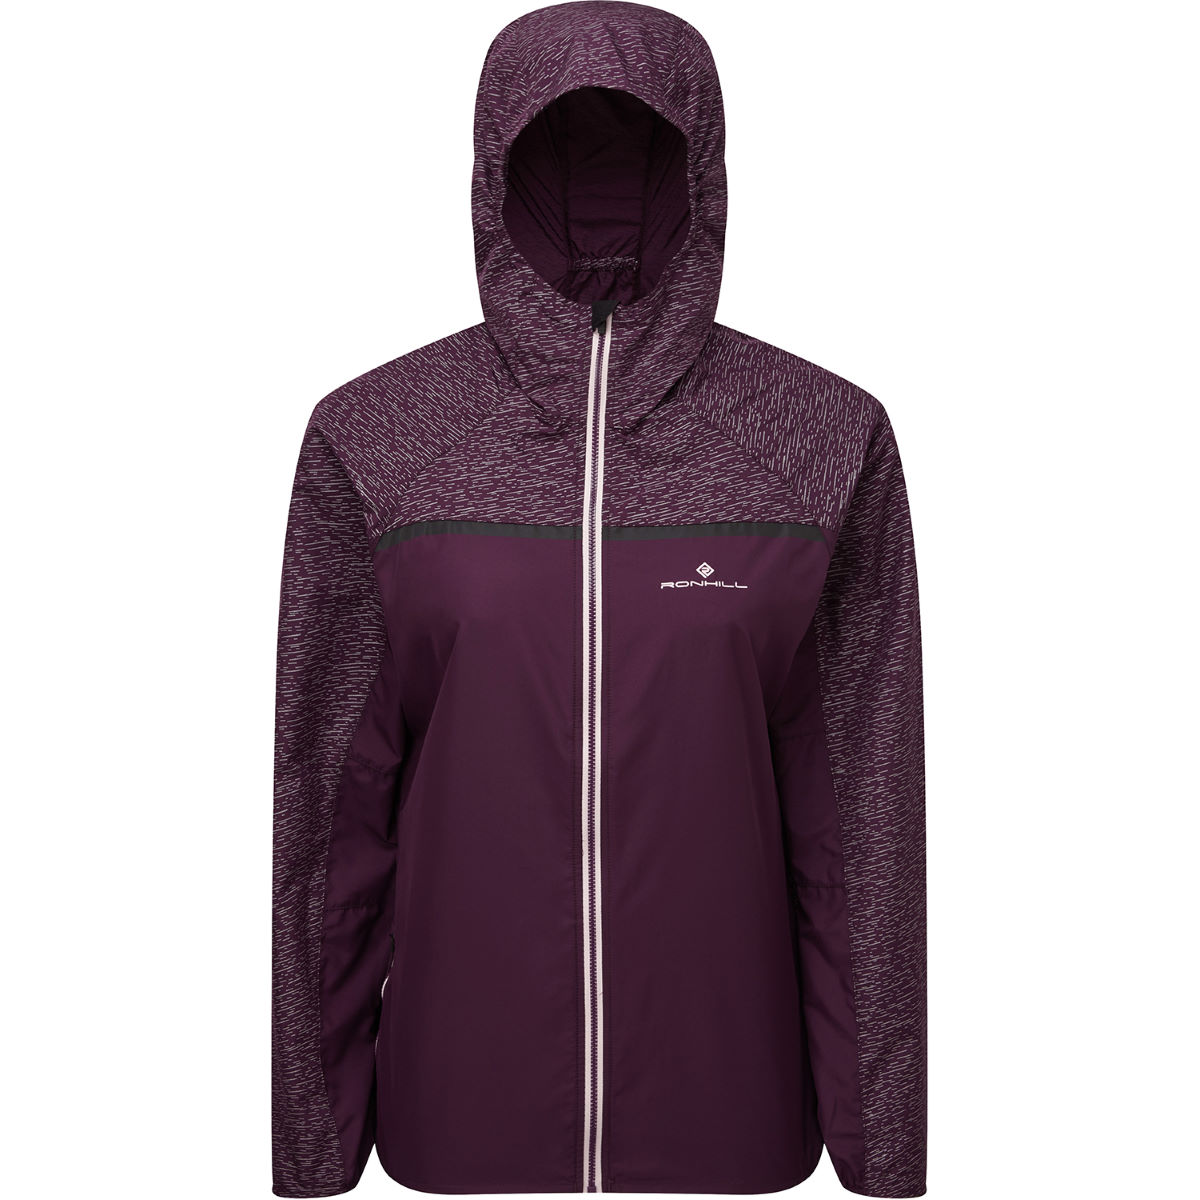 Veste de running Femme Ronhill Momentum Afterlight - UK 8 | Vestes